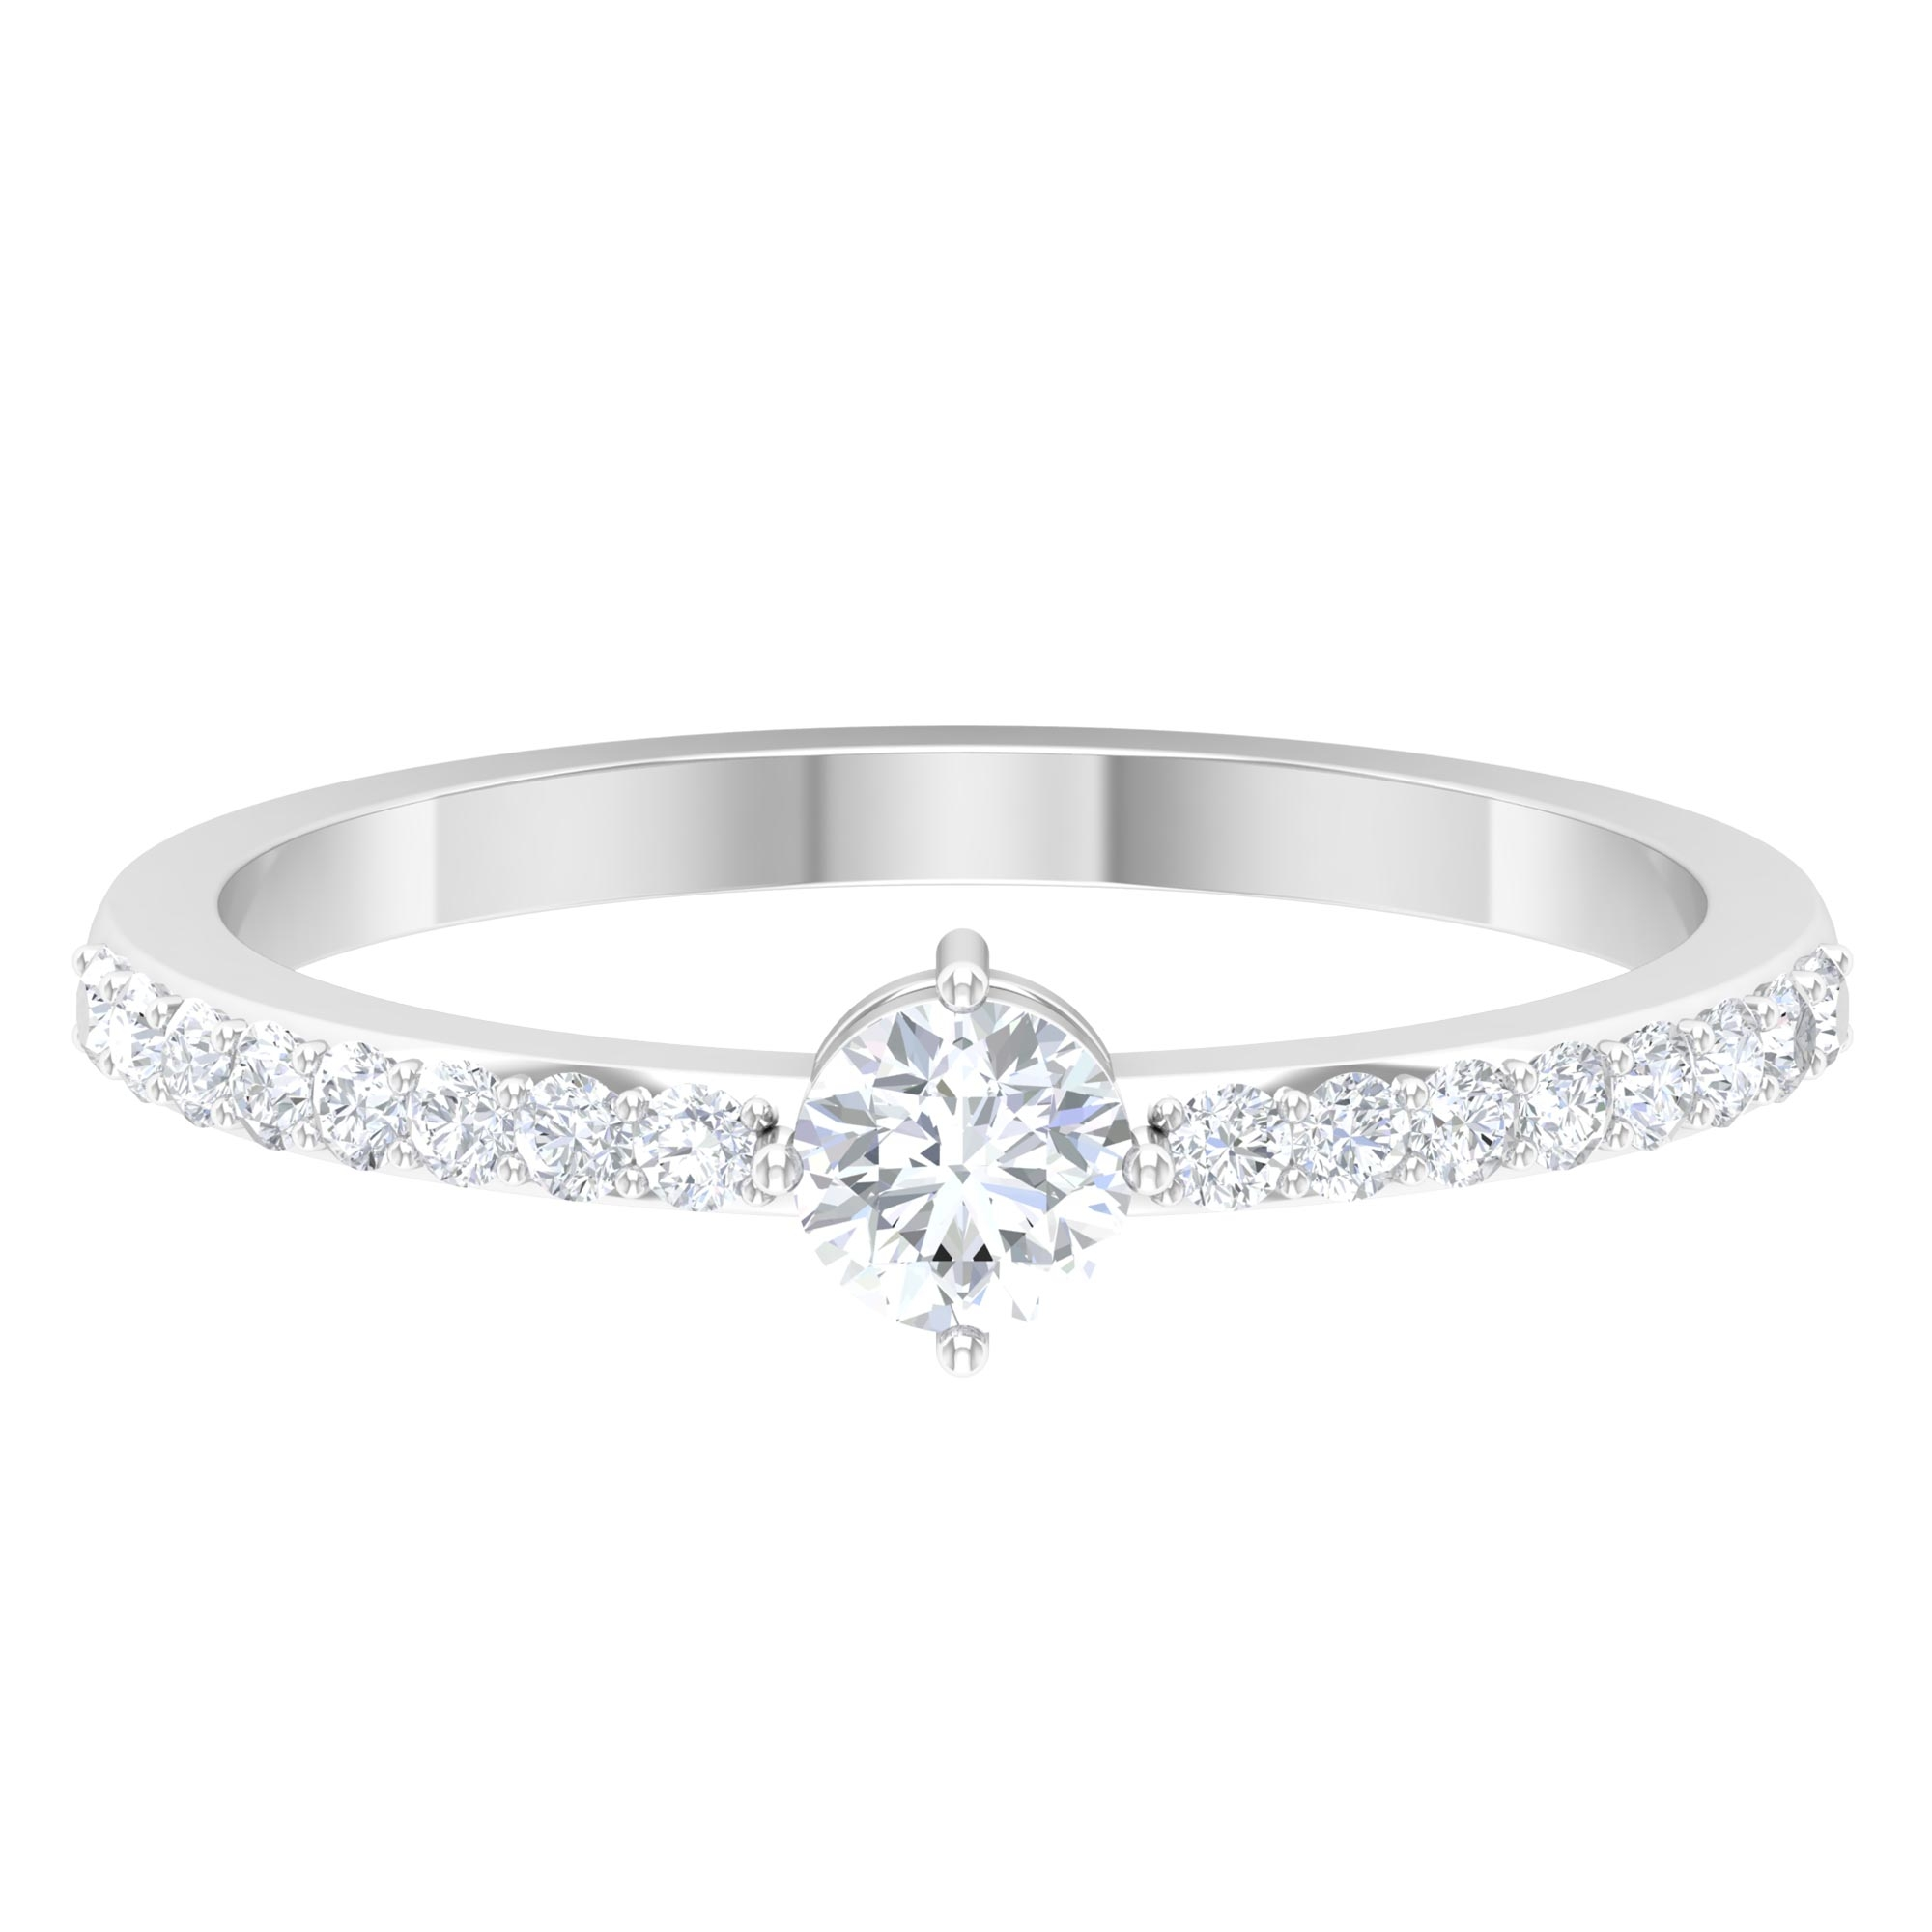 1/2 CT Round Cut Diamond Solitaire Ring in 4 Prong Diagonal Setting and Surprise Style with Surface Side Stones